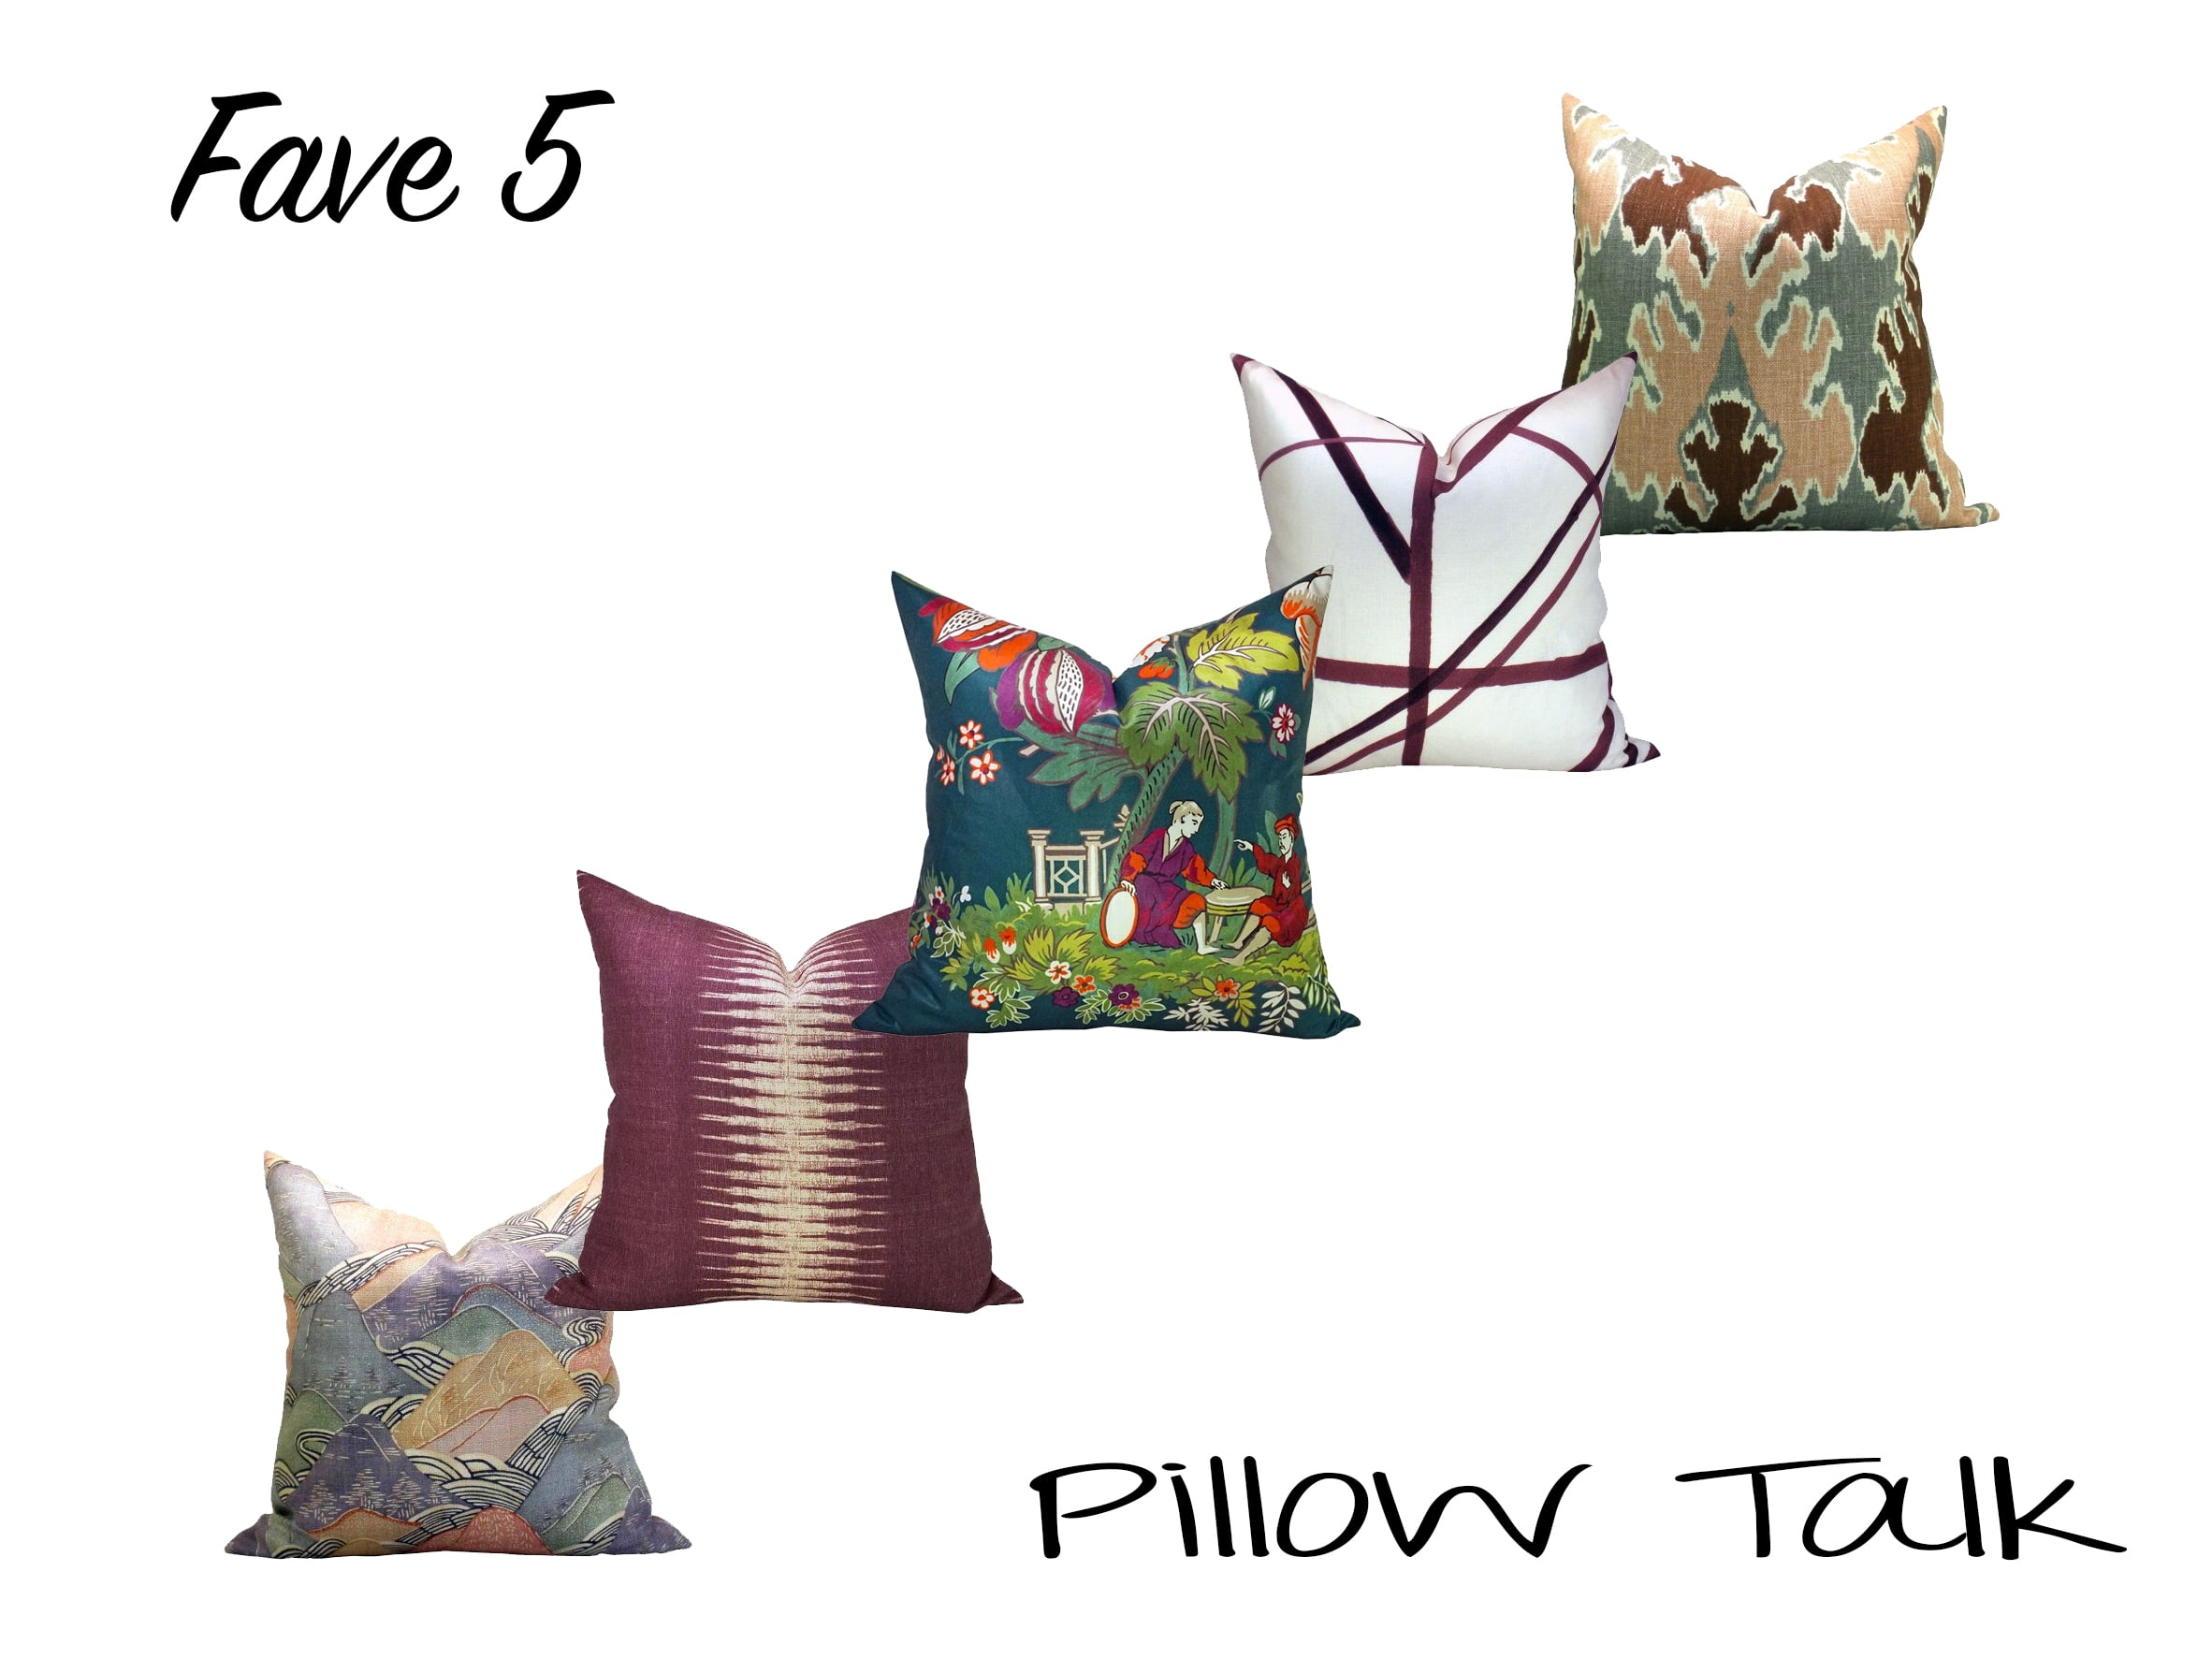 Left to right (all pillows by  SparkModern ):  Kelly Wearstler Edo Linen in  Opal   Peter Dunham Textiles Ikat in  Pasha   Manuel Canovas Parfum d'Ete in  Bleu Canard   Kelly Wearstler Channels in  Plum Oatmeal   Kelly Wearstler Bengal Bazaar in  Magenta